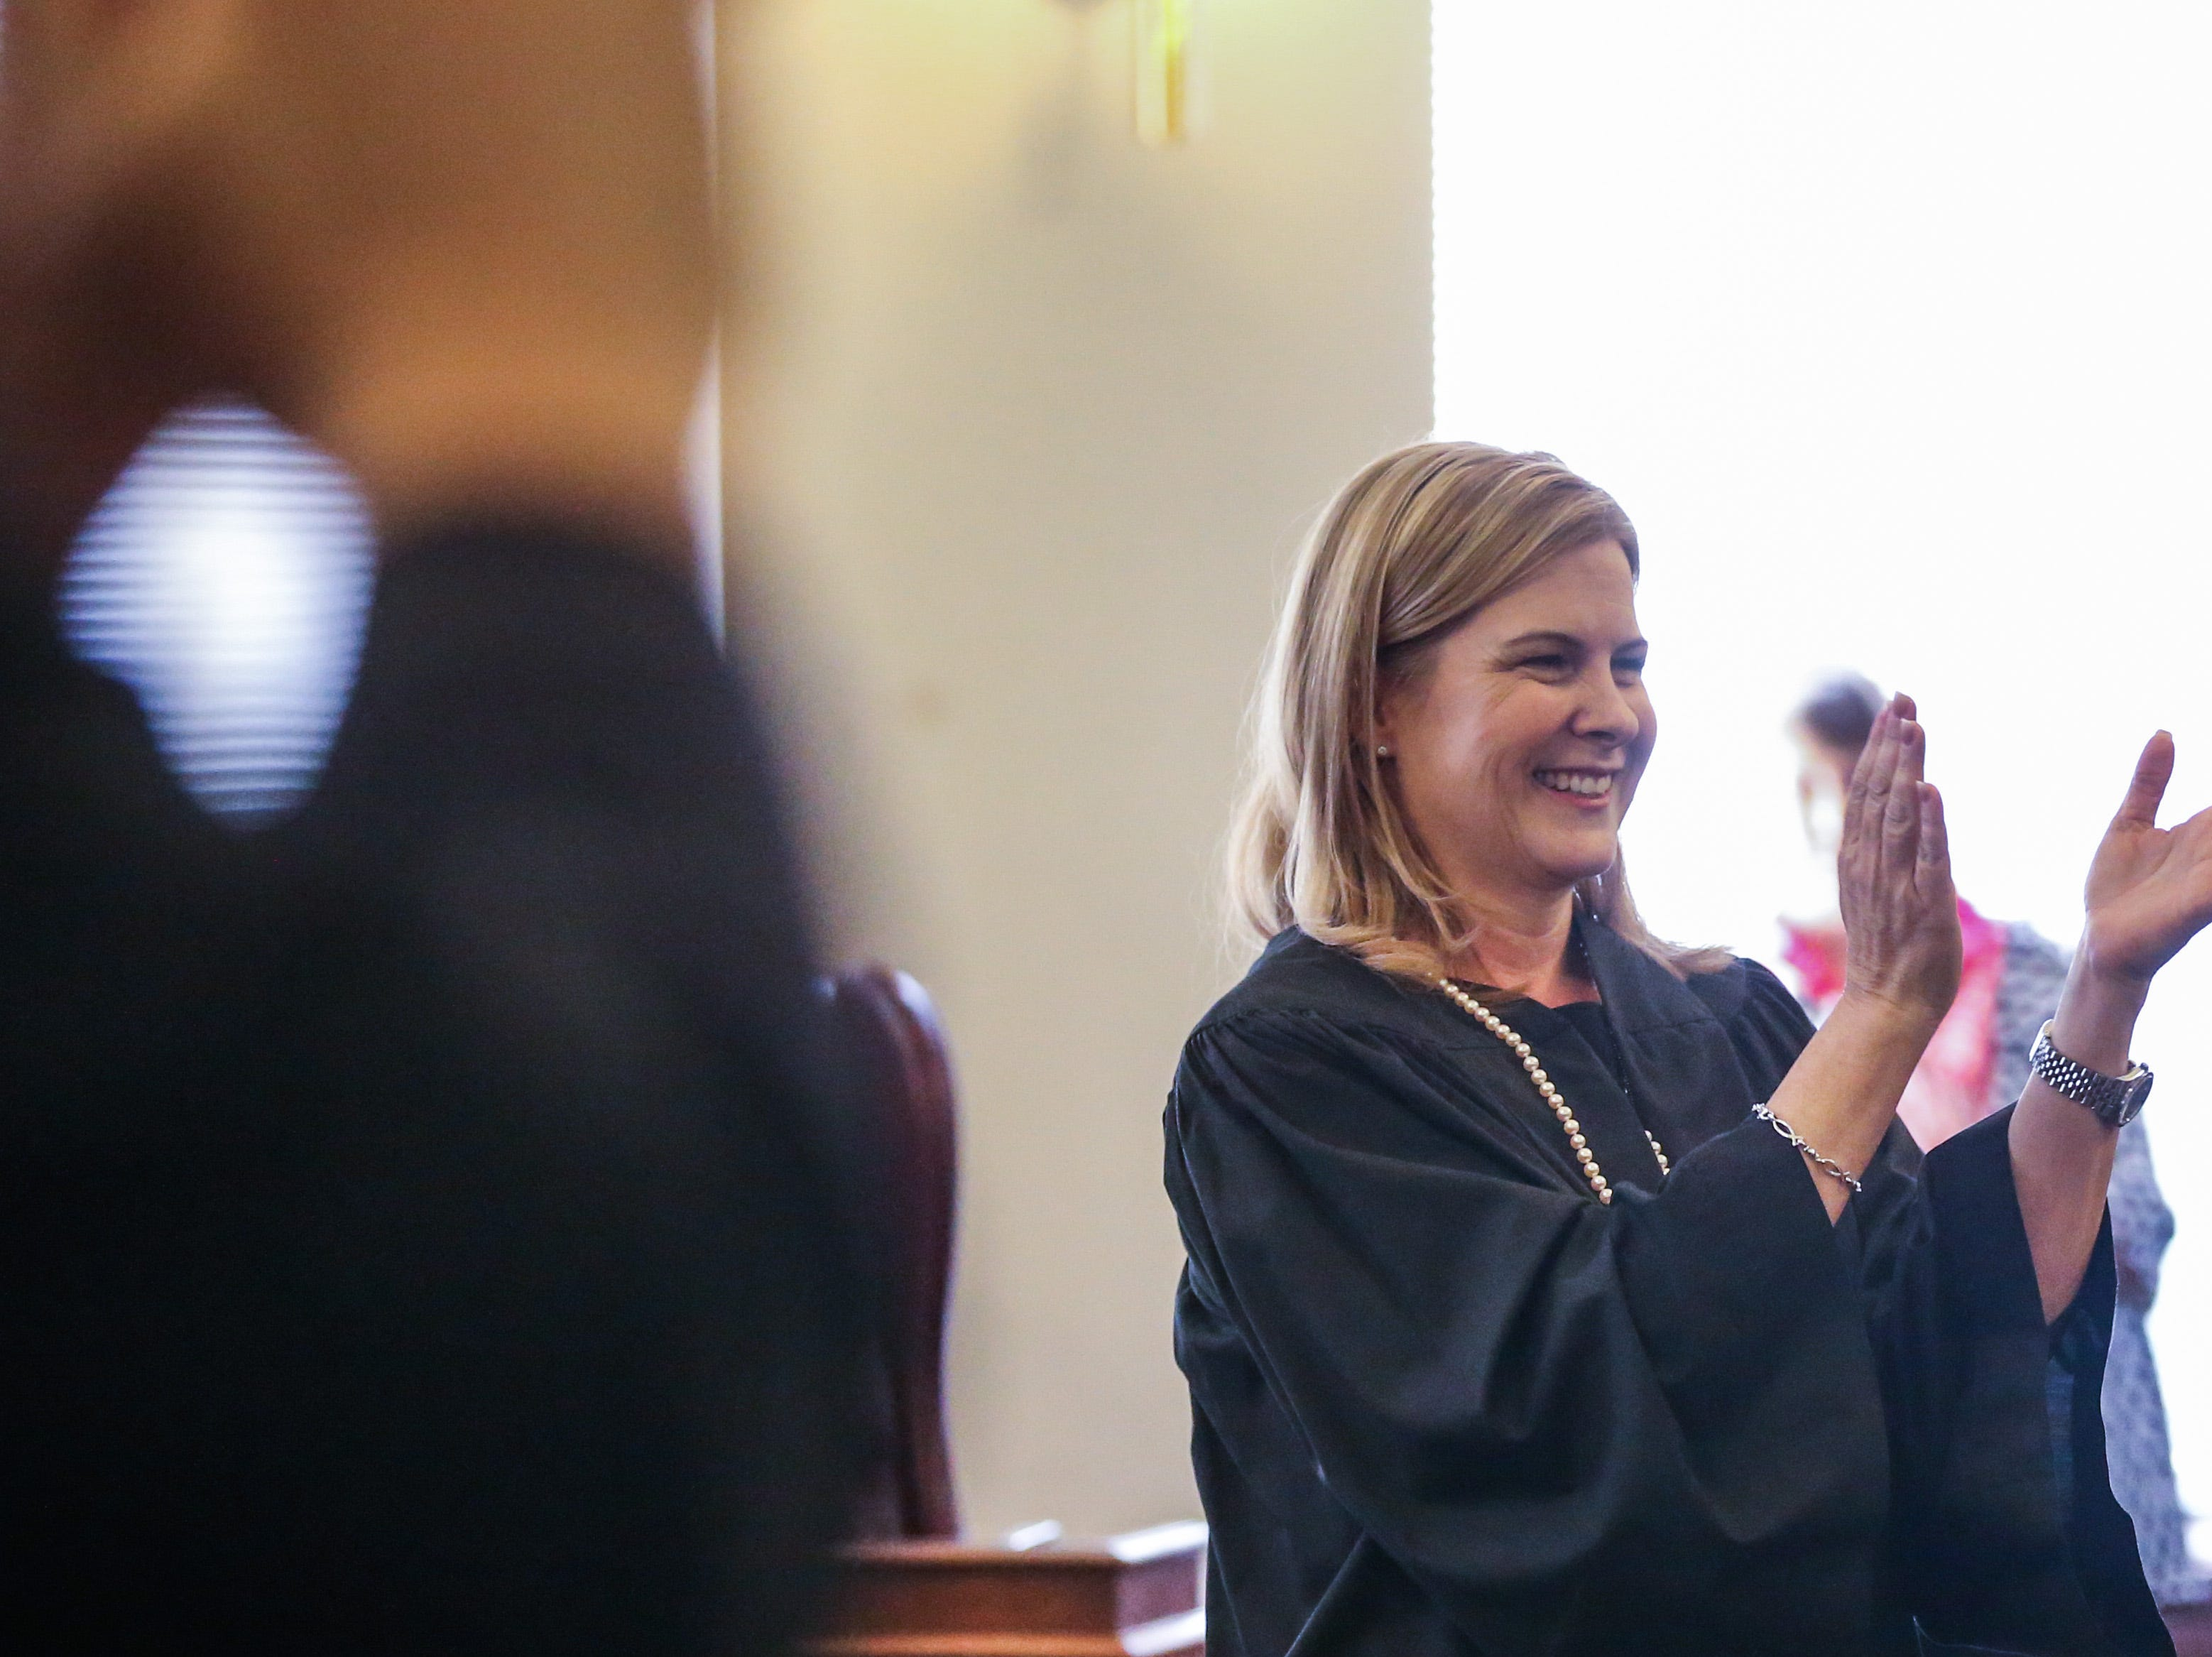 Judge Carmen Dusek applauses Justice during the swearing in ceremony Friday, Dec. 14, 2018, at Tom Green Courthouse.